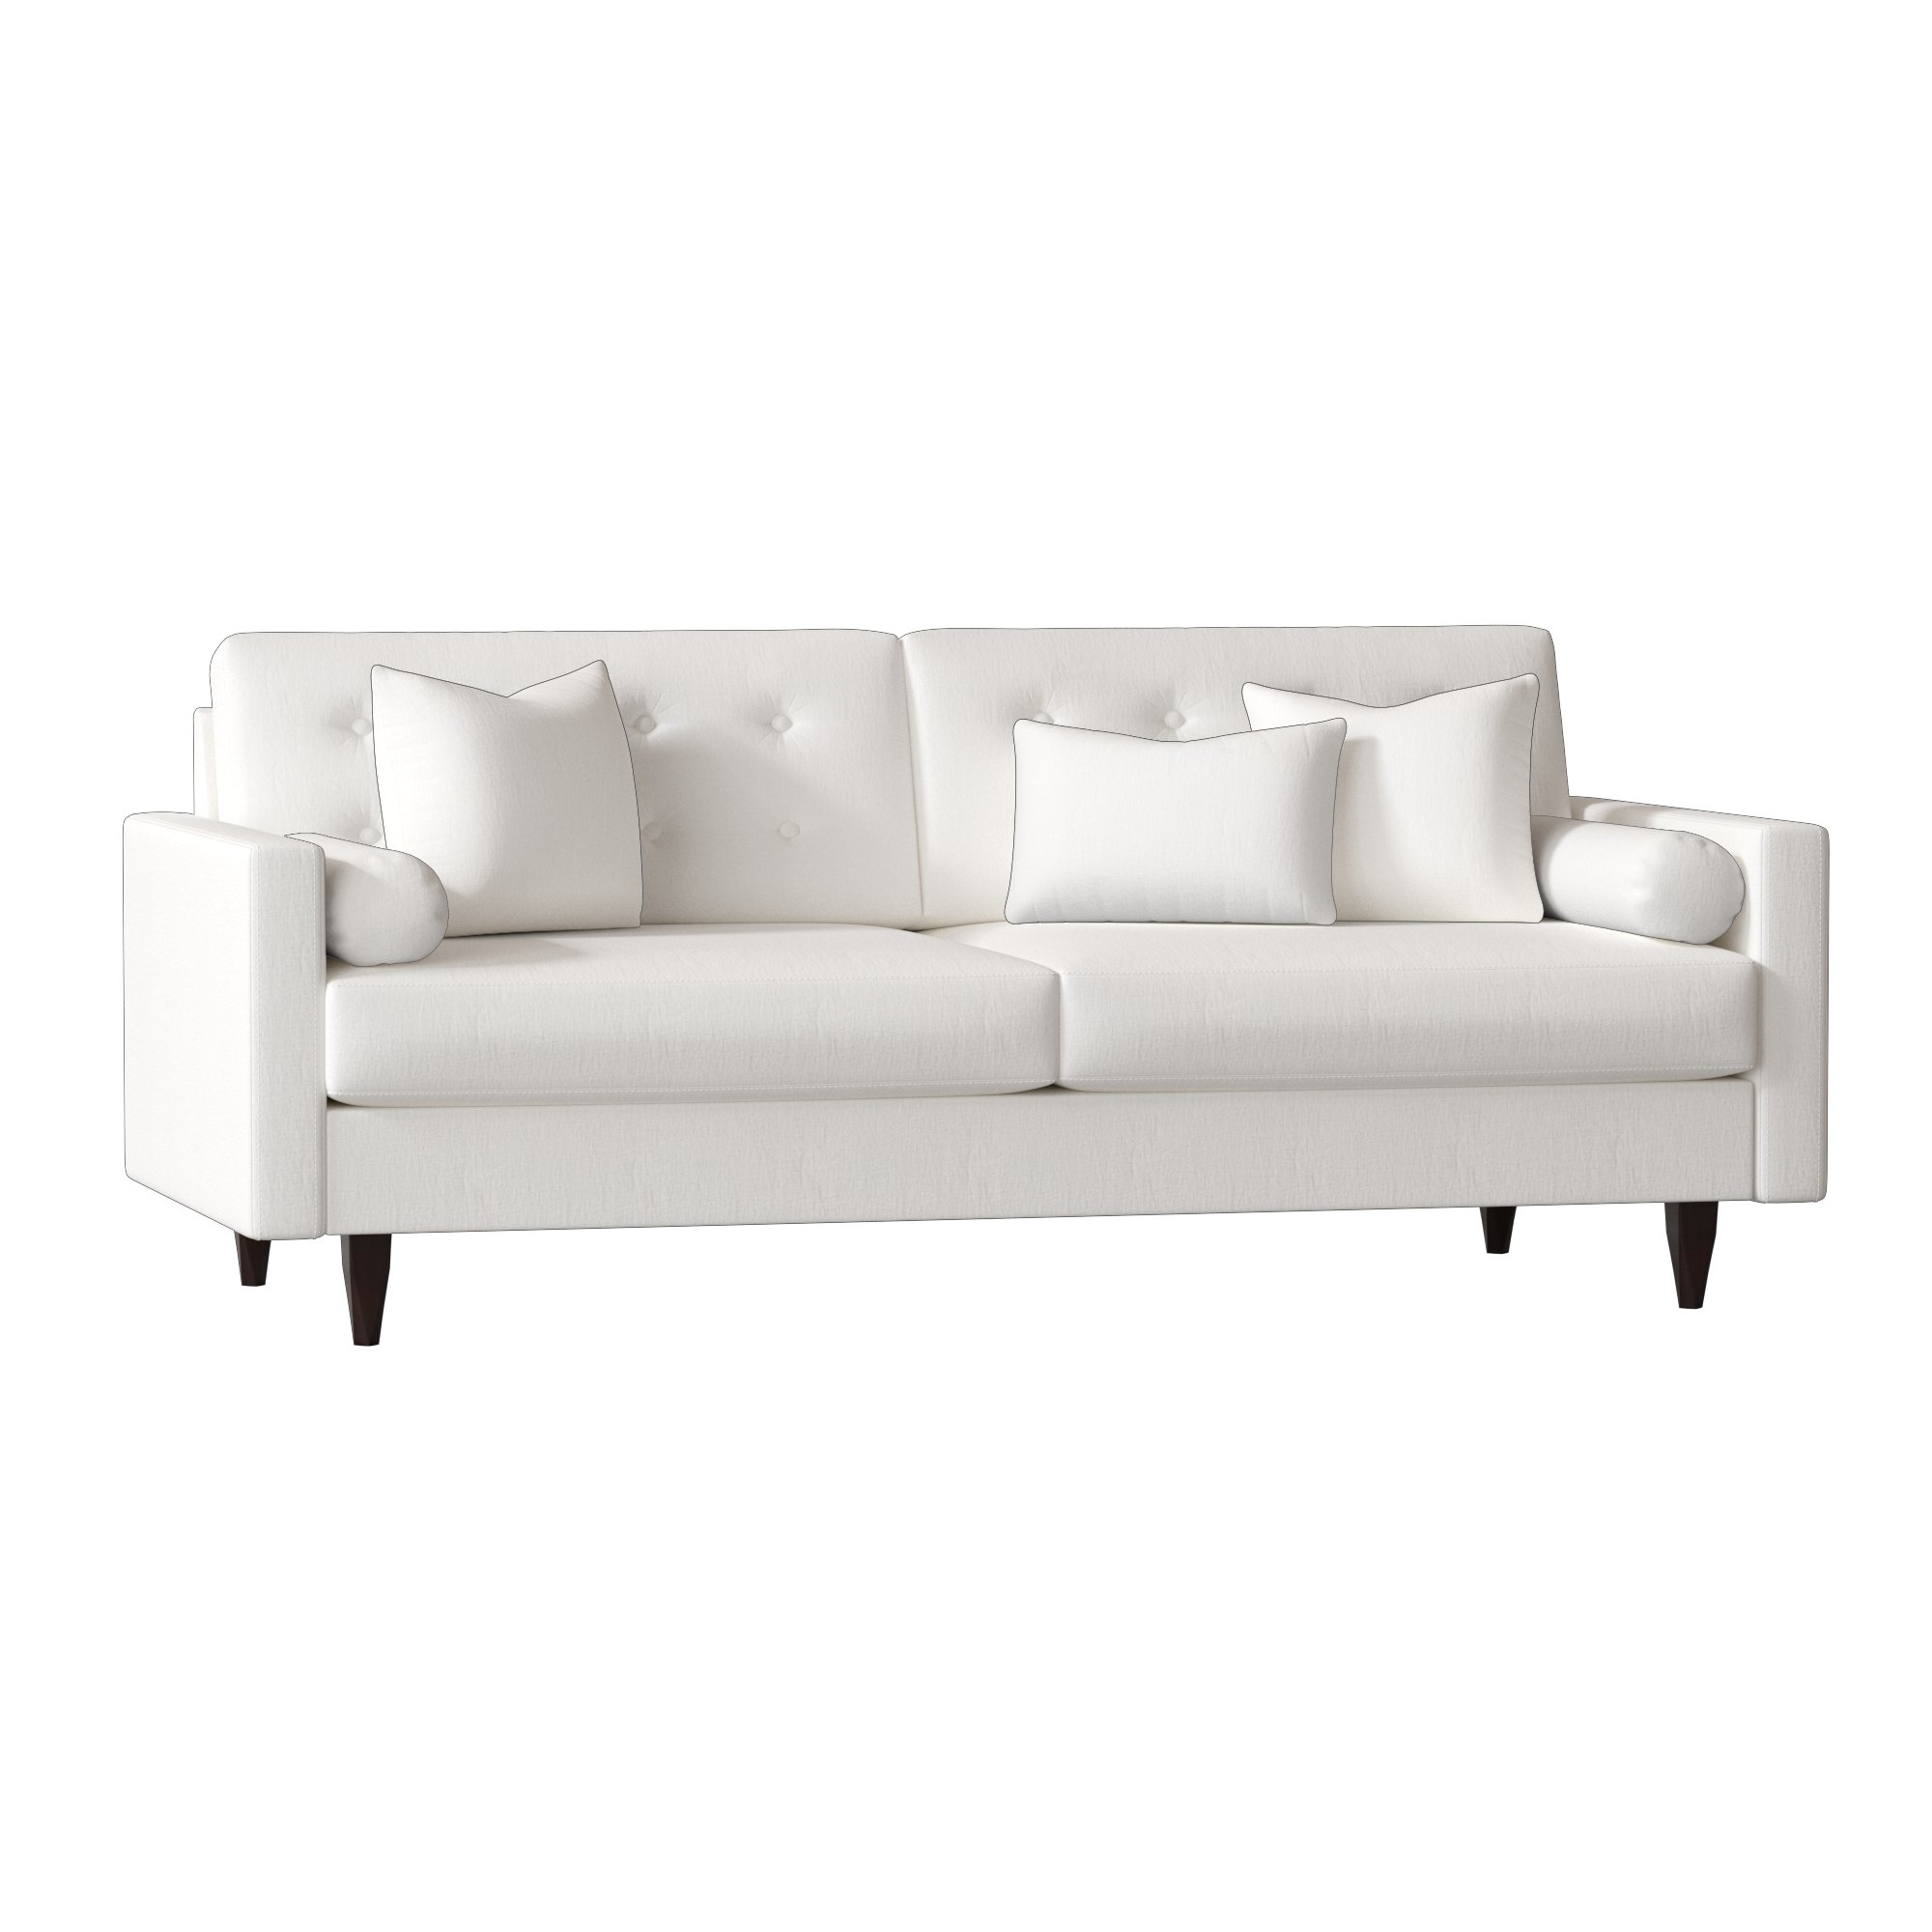 Wayfair Custom Upholstery™ Harper Sofa & Reviews | Wayfair In Harper Down 3 Piece Sectionals (Image 24 of 25)